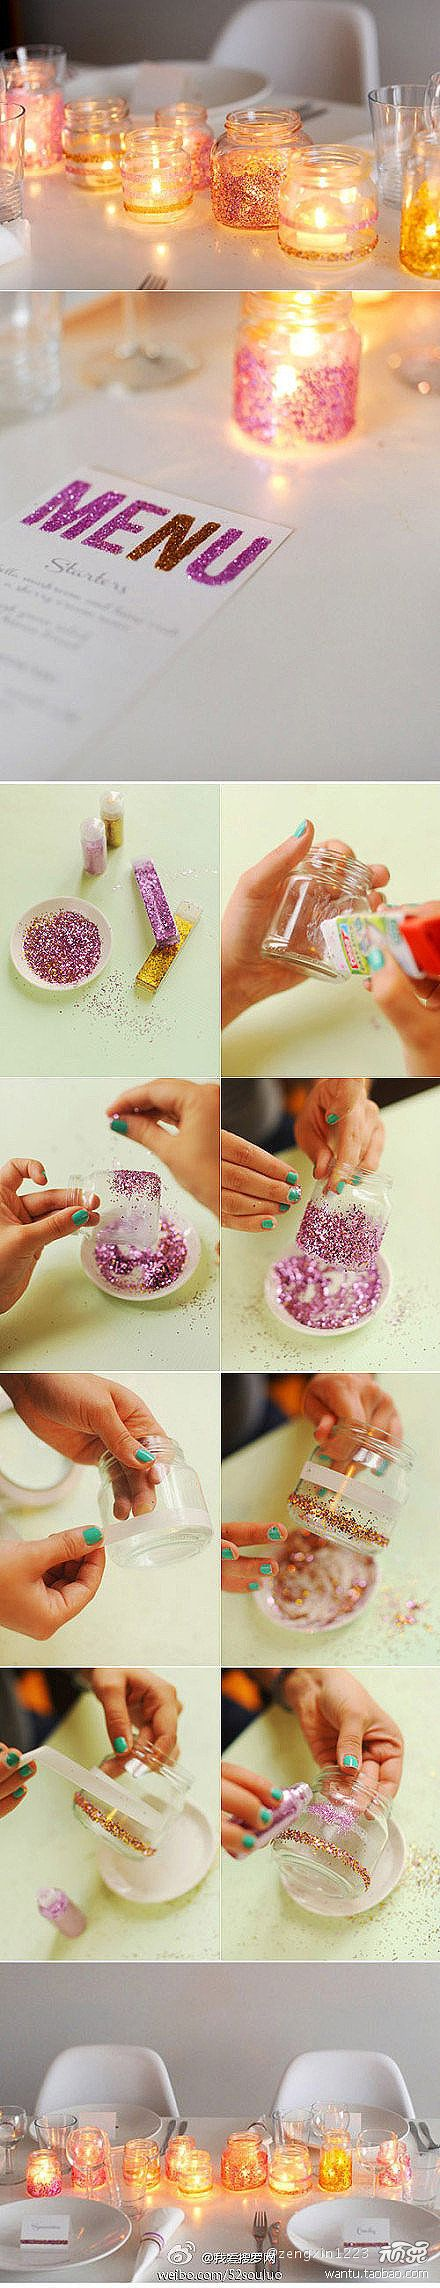 DIY Candle holders with glitters. #candles #DIY